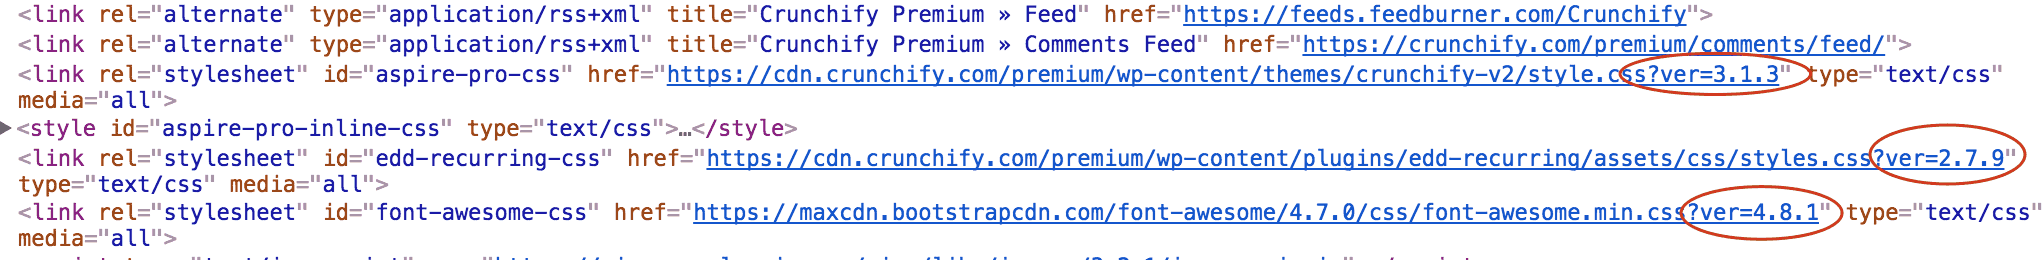 supprimer query string